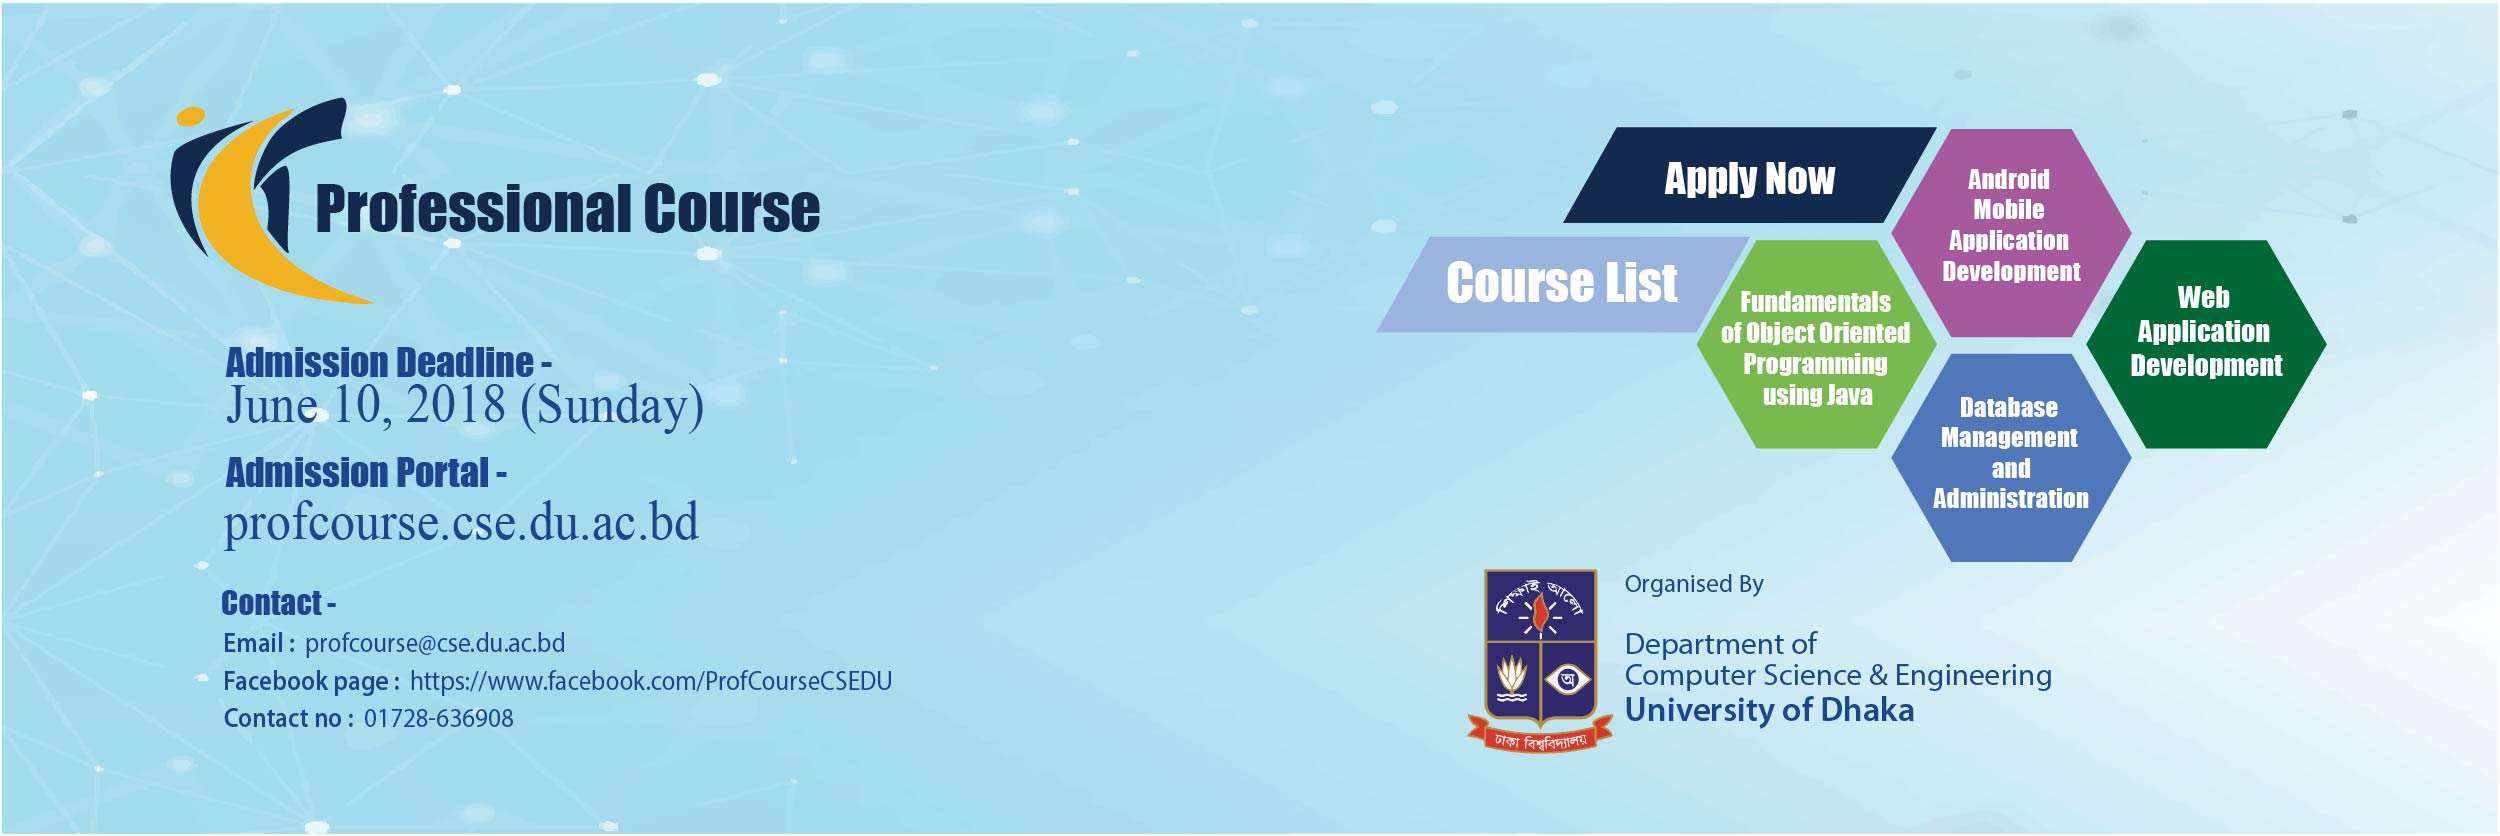 ICT Professional Course | CSEDU